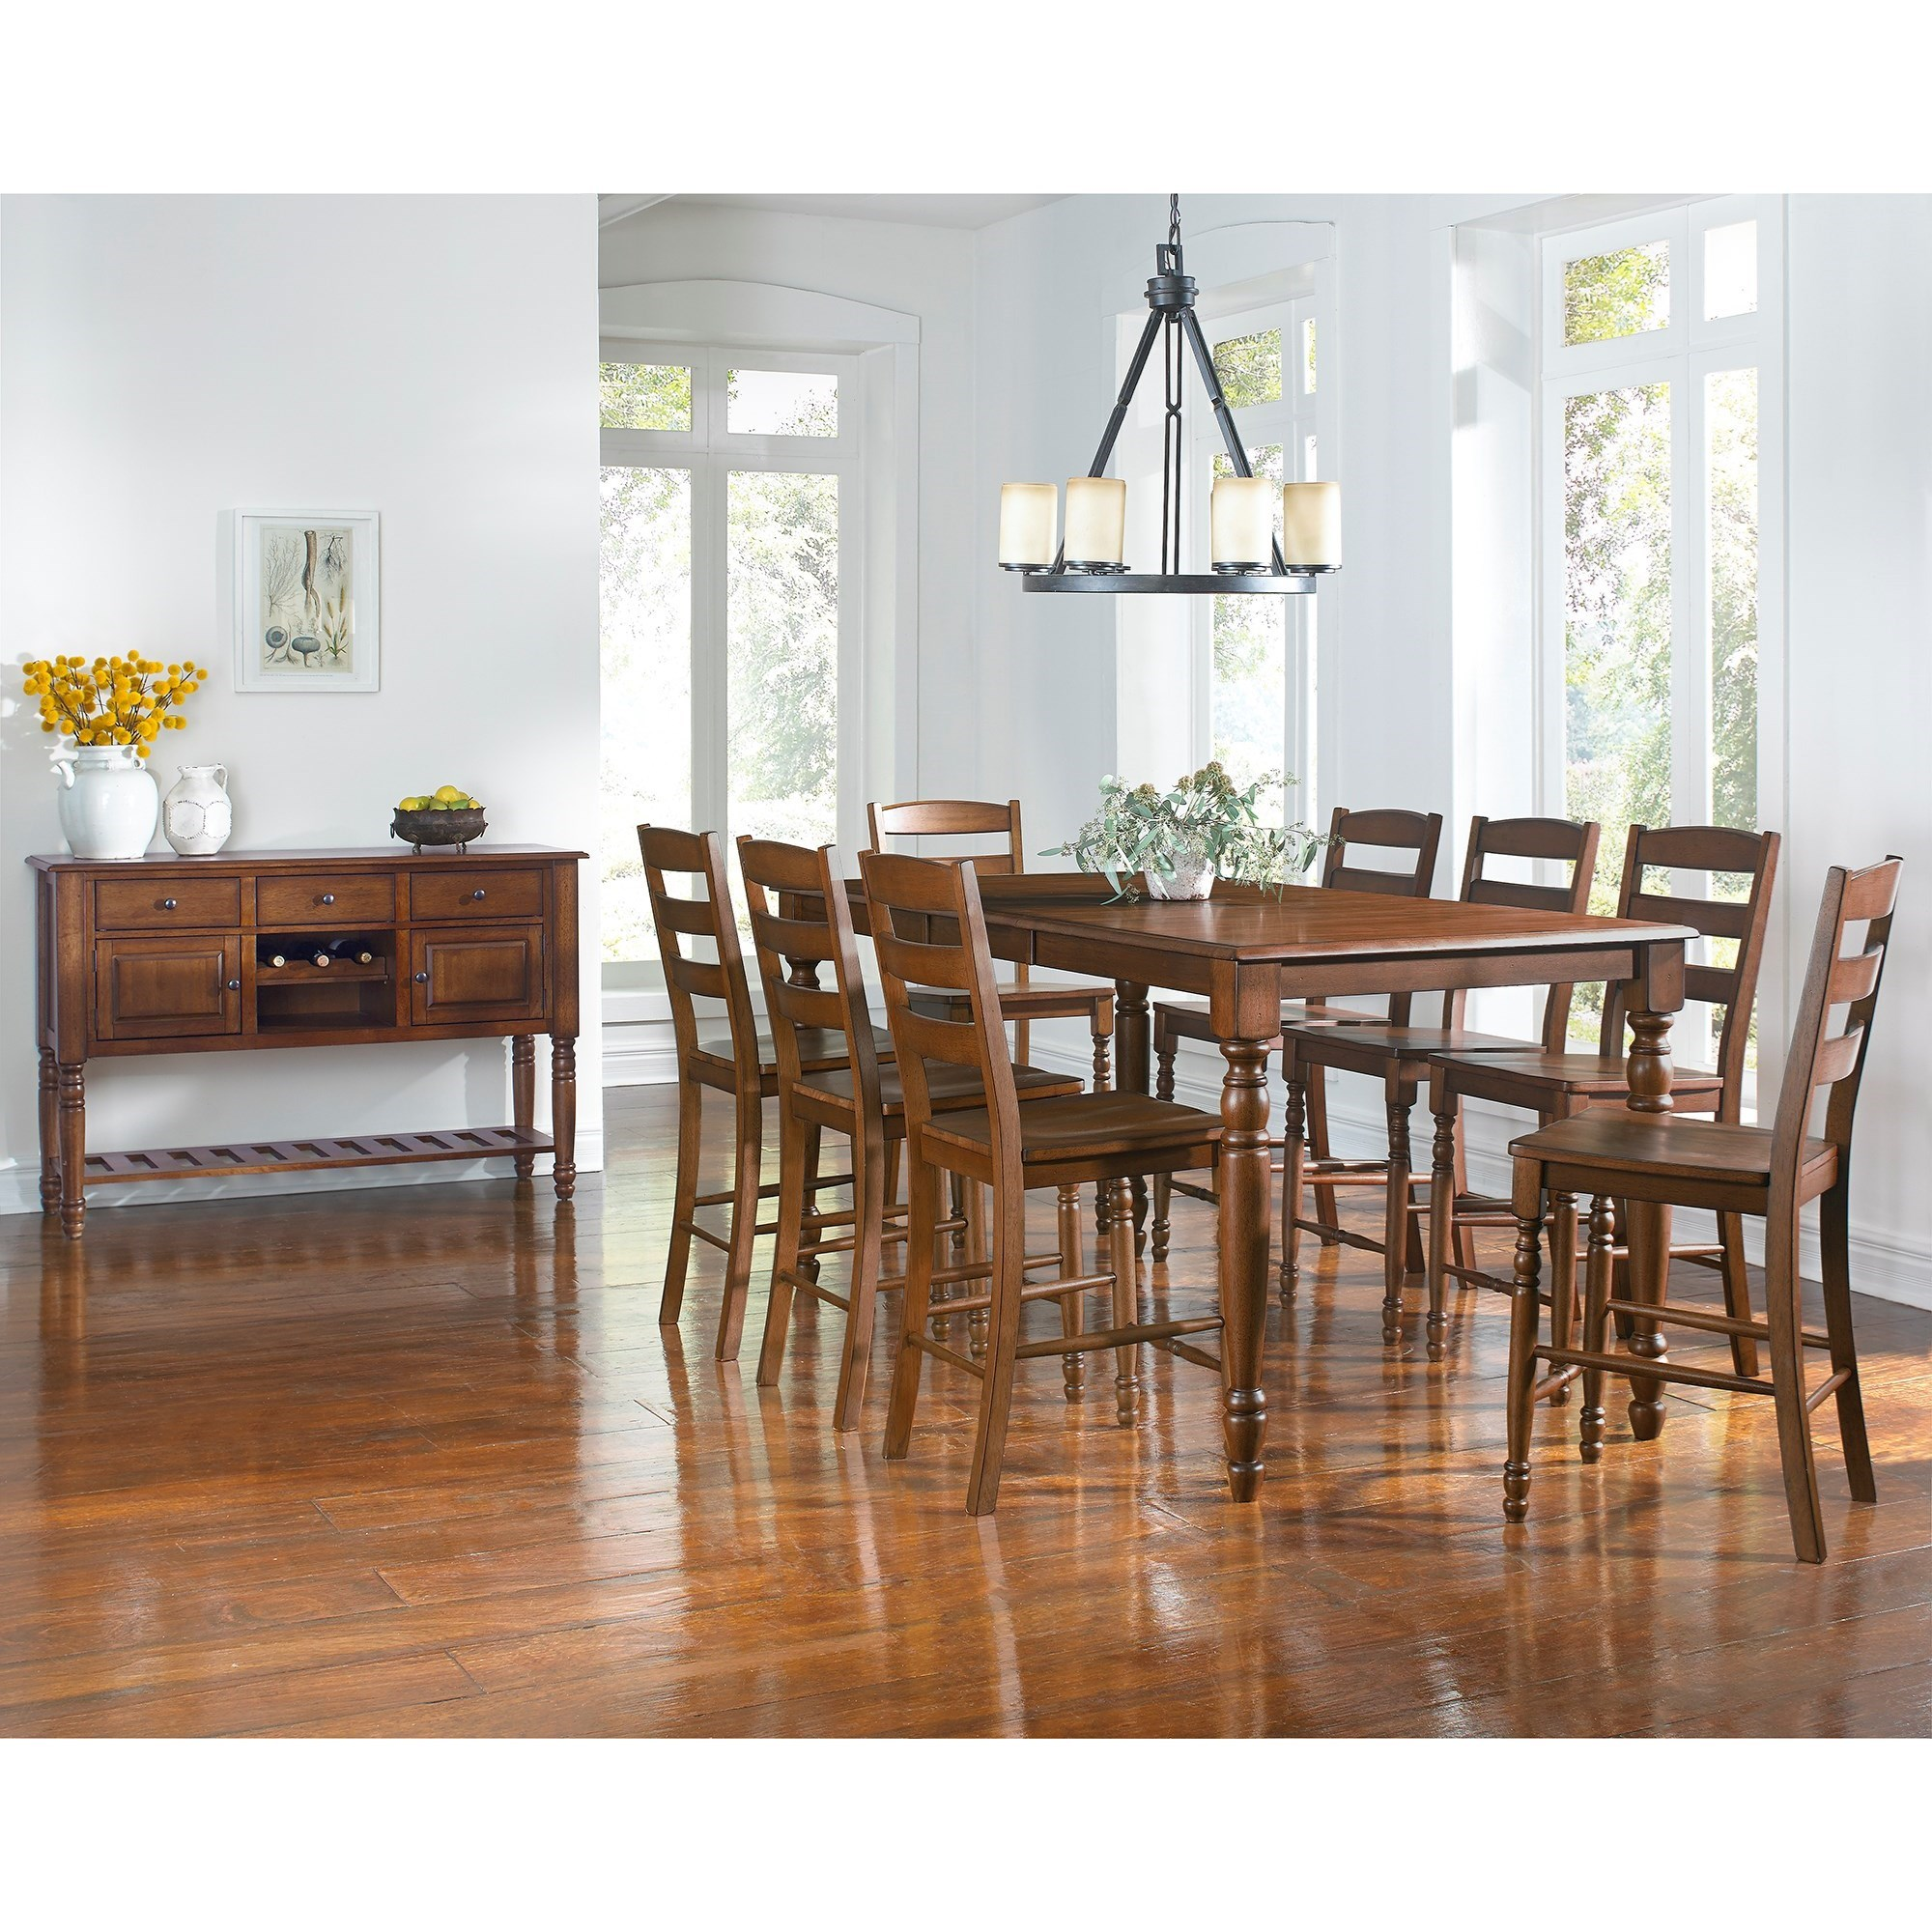 Aamerica roanoke 9 piece counter height dining table for Table 6 wildwood mo